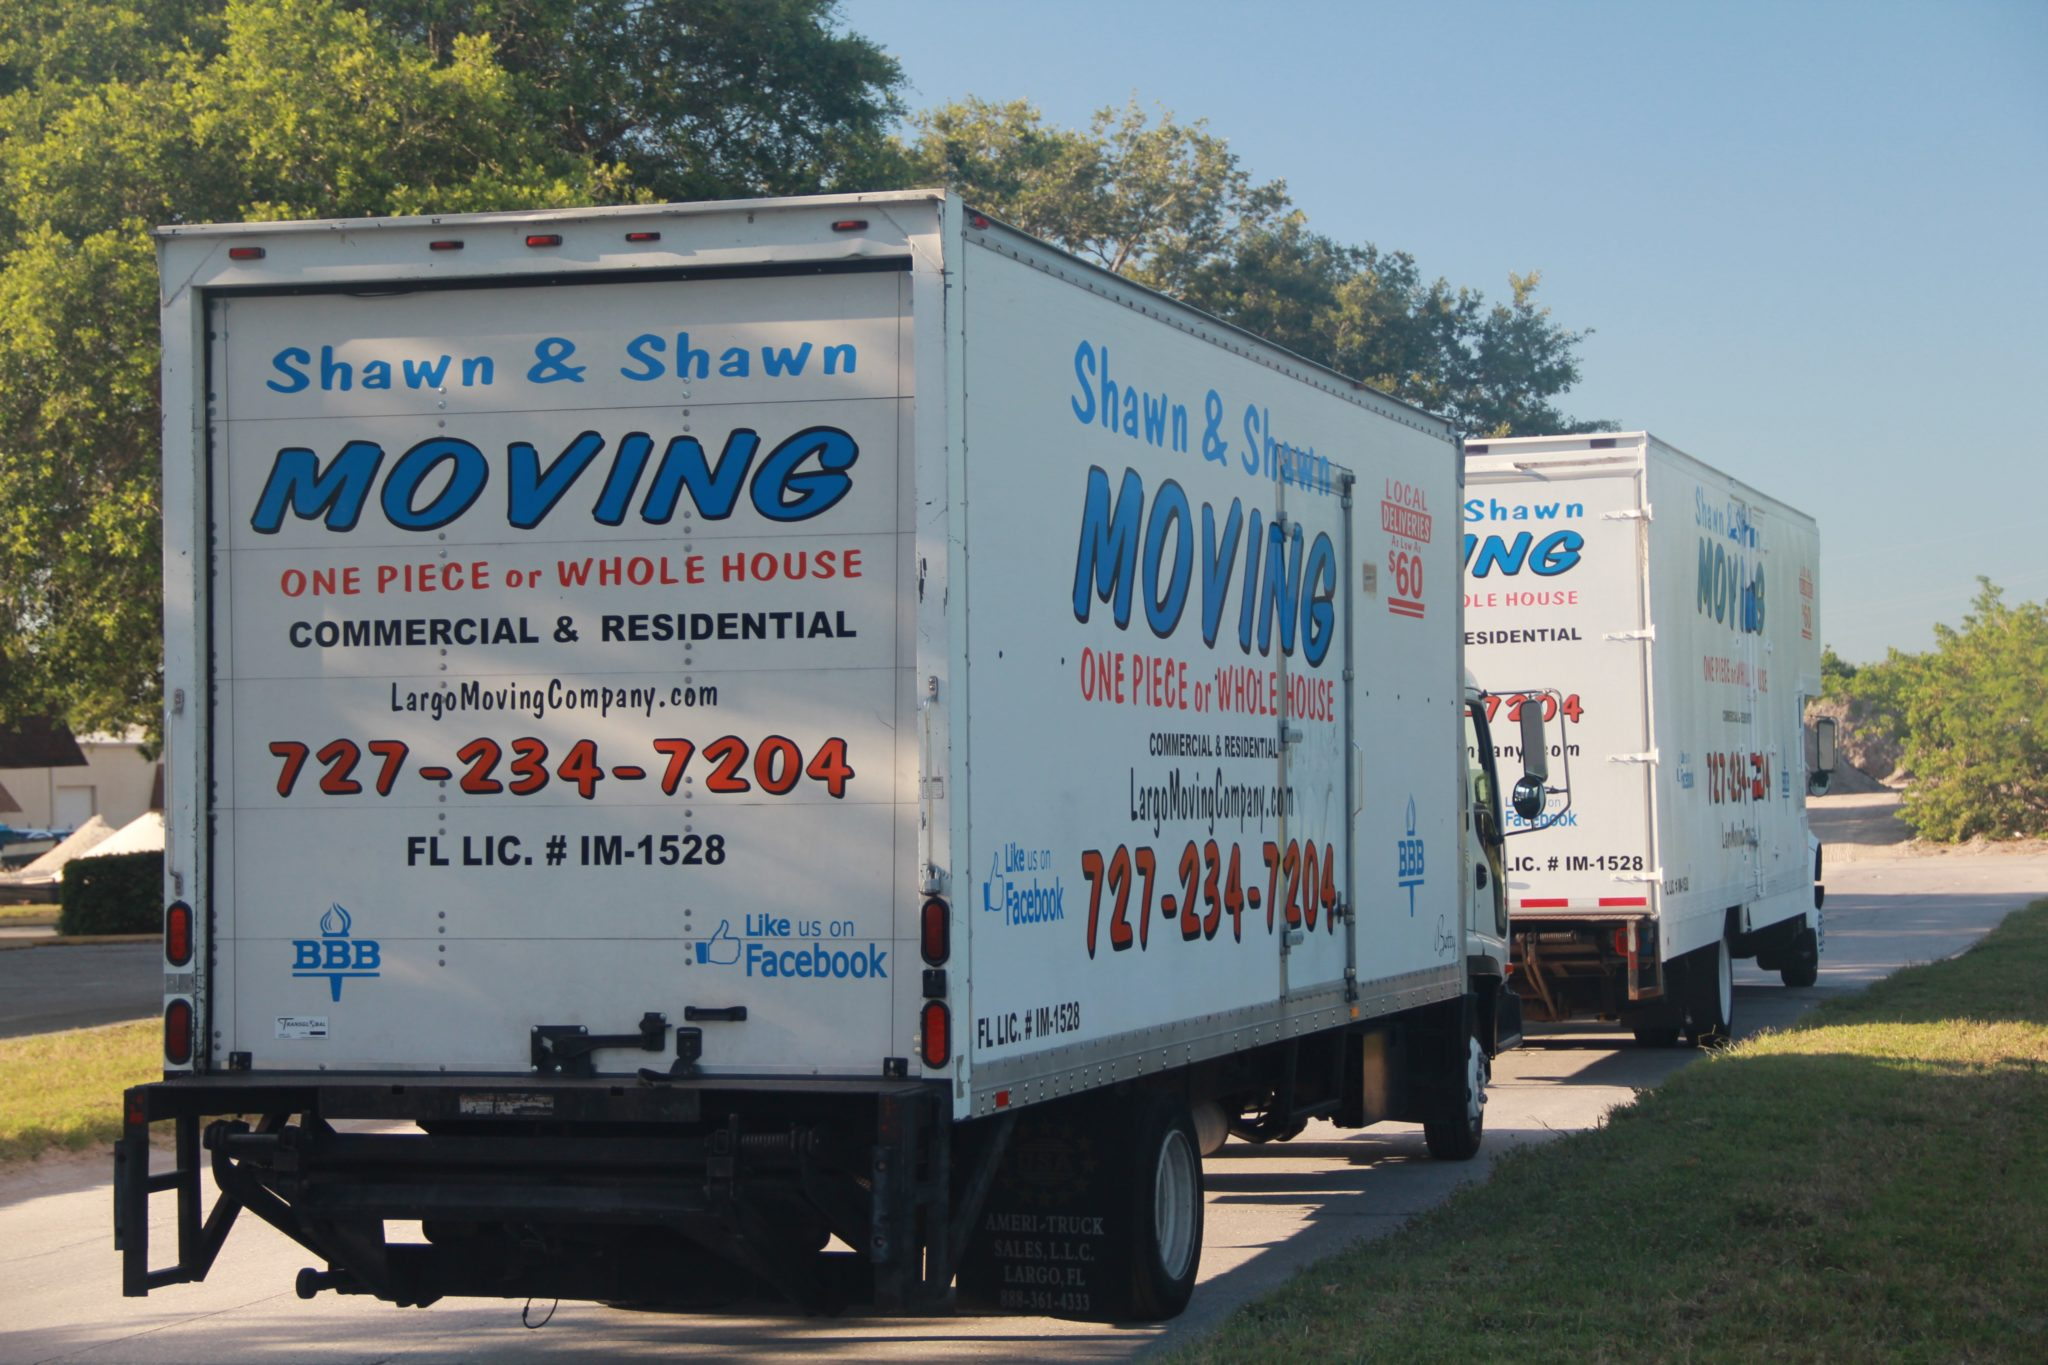 Northeast Movers | Shawn & Shawn Moving company | Largo, Florida